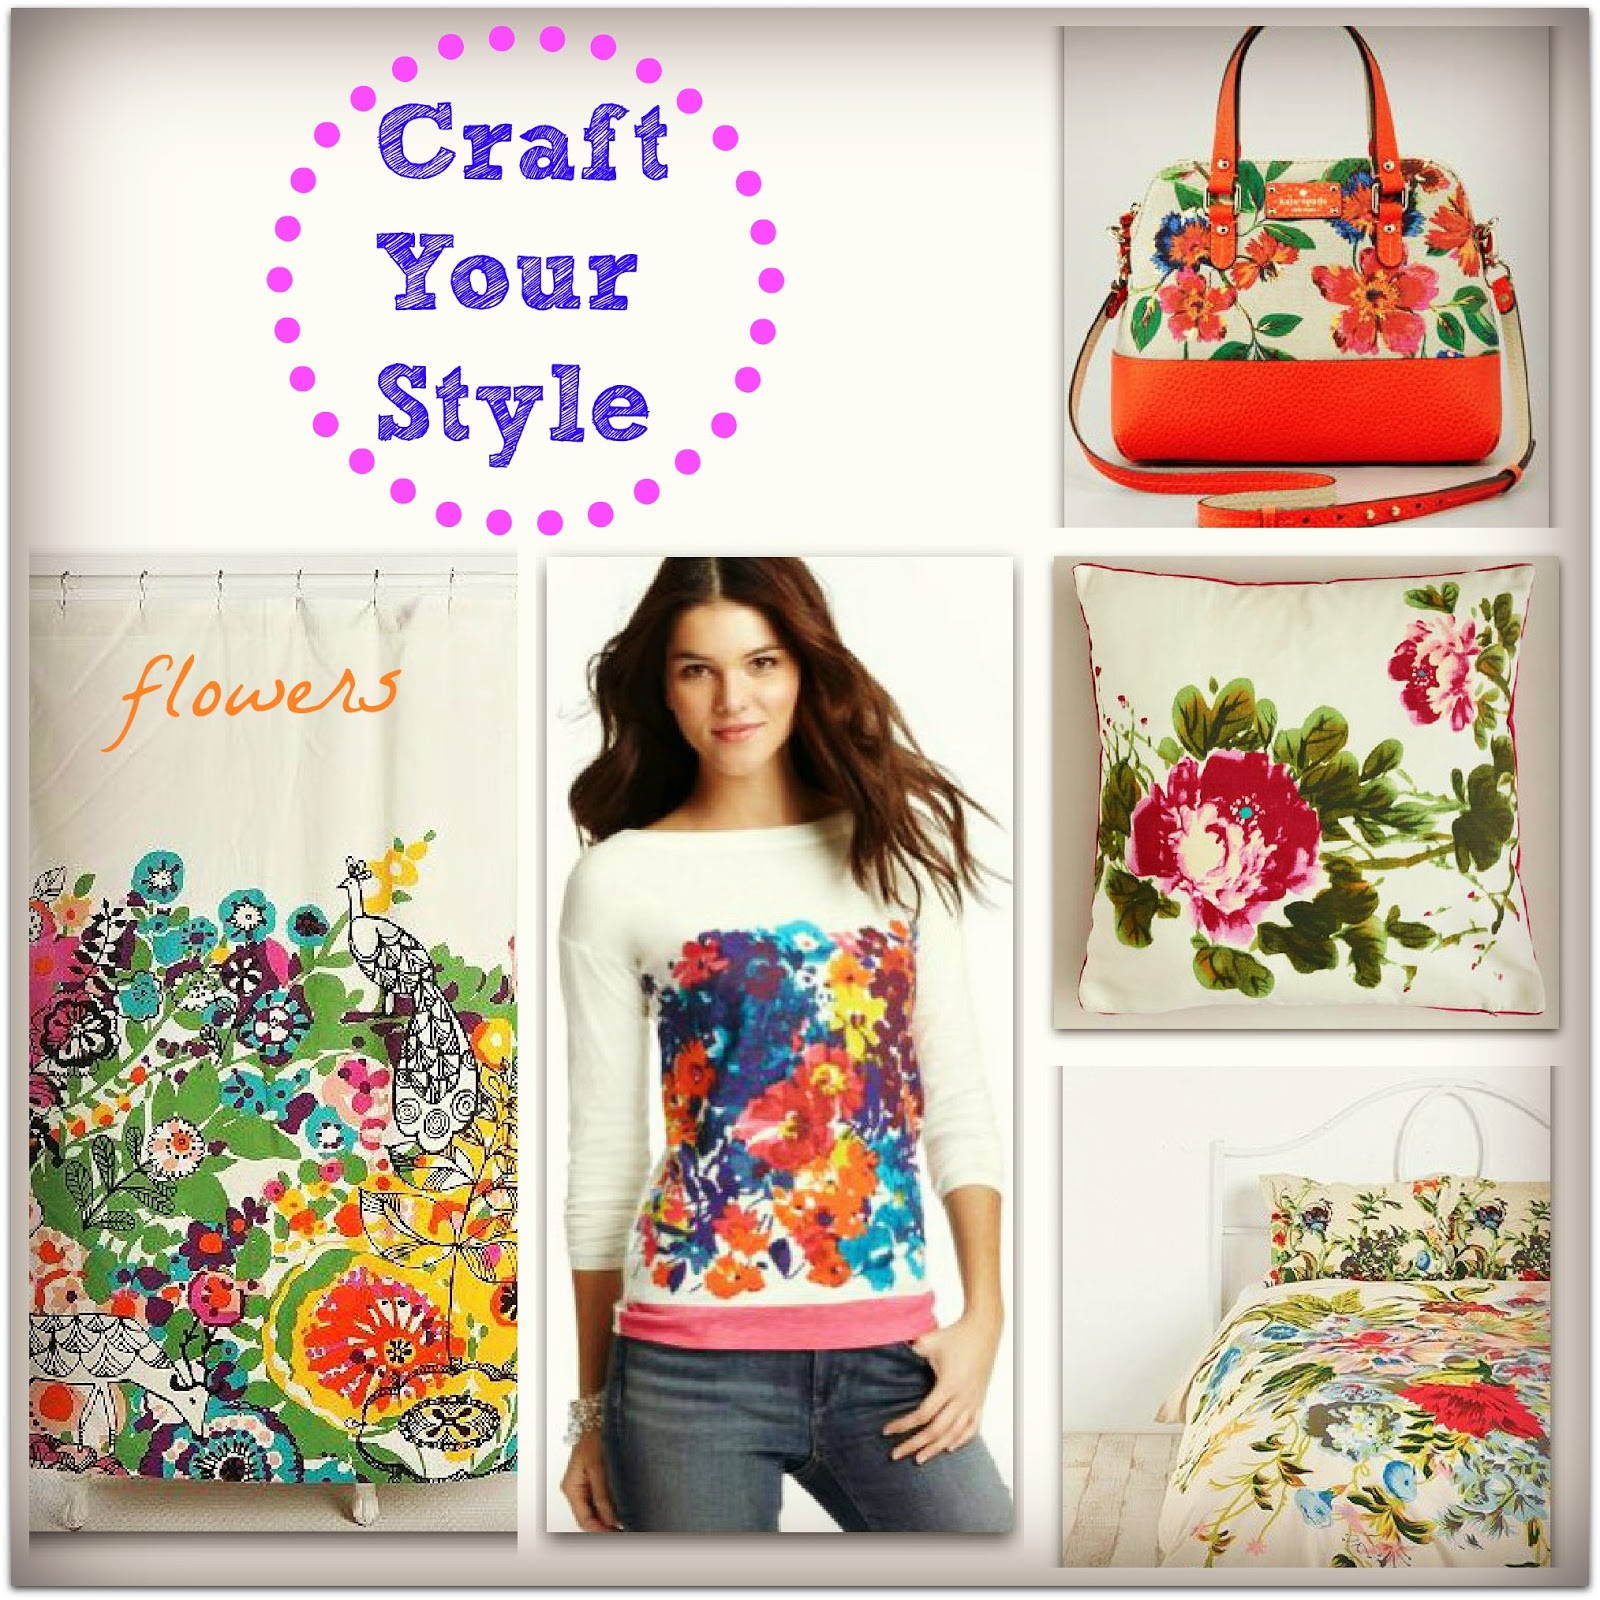 Craft Your Craft Craft Your Style Crazy About Flowers